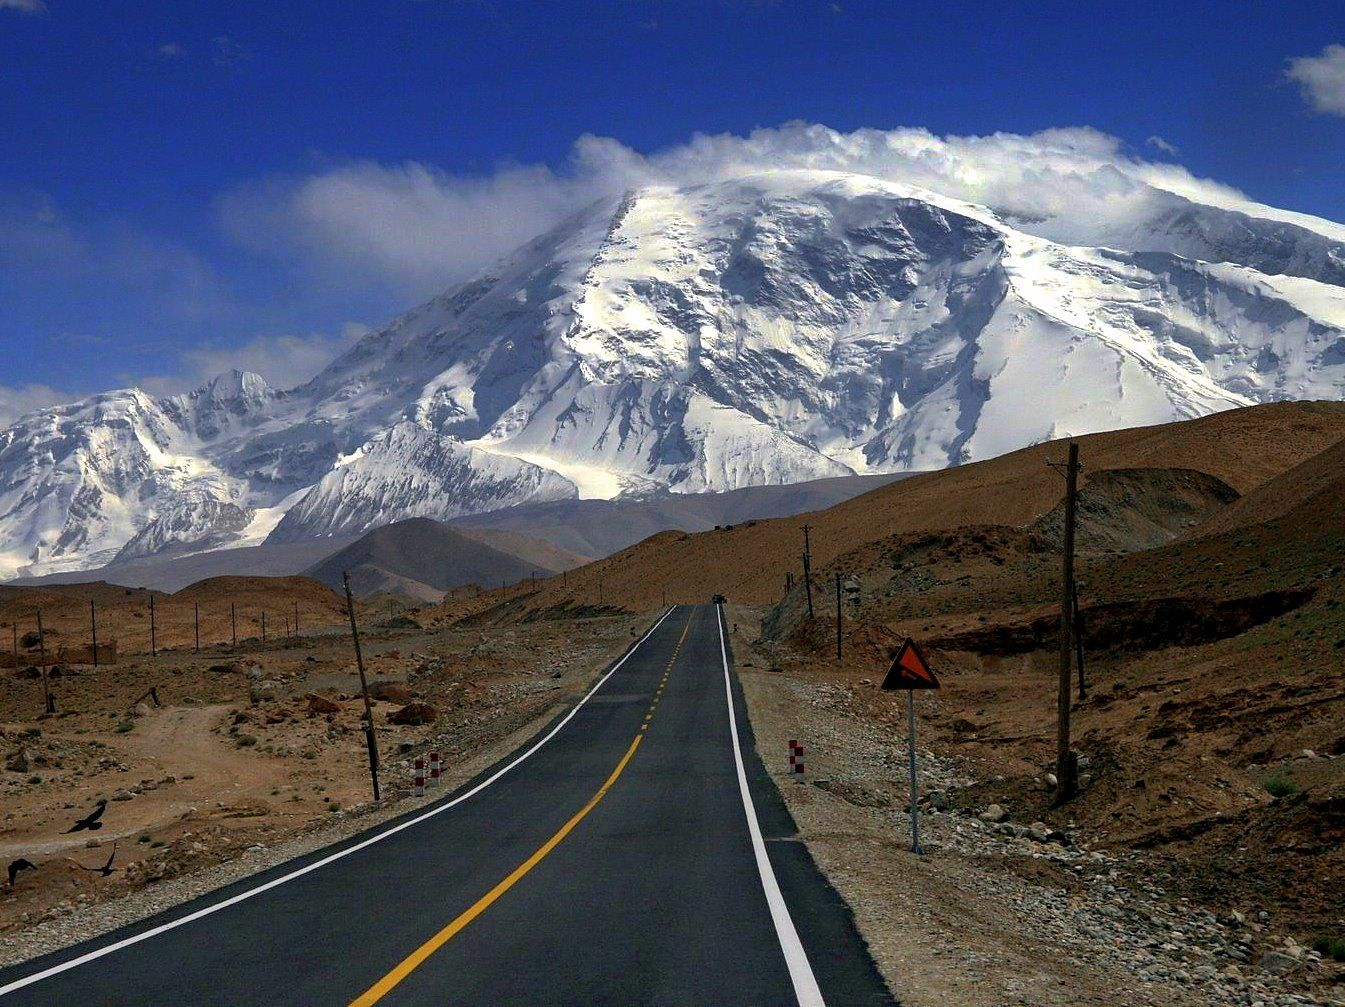 The Karakoram Highway Karakoram Highway Top 10 Road Trips Karakoram Mountains